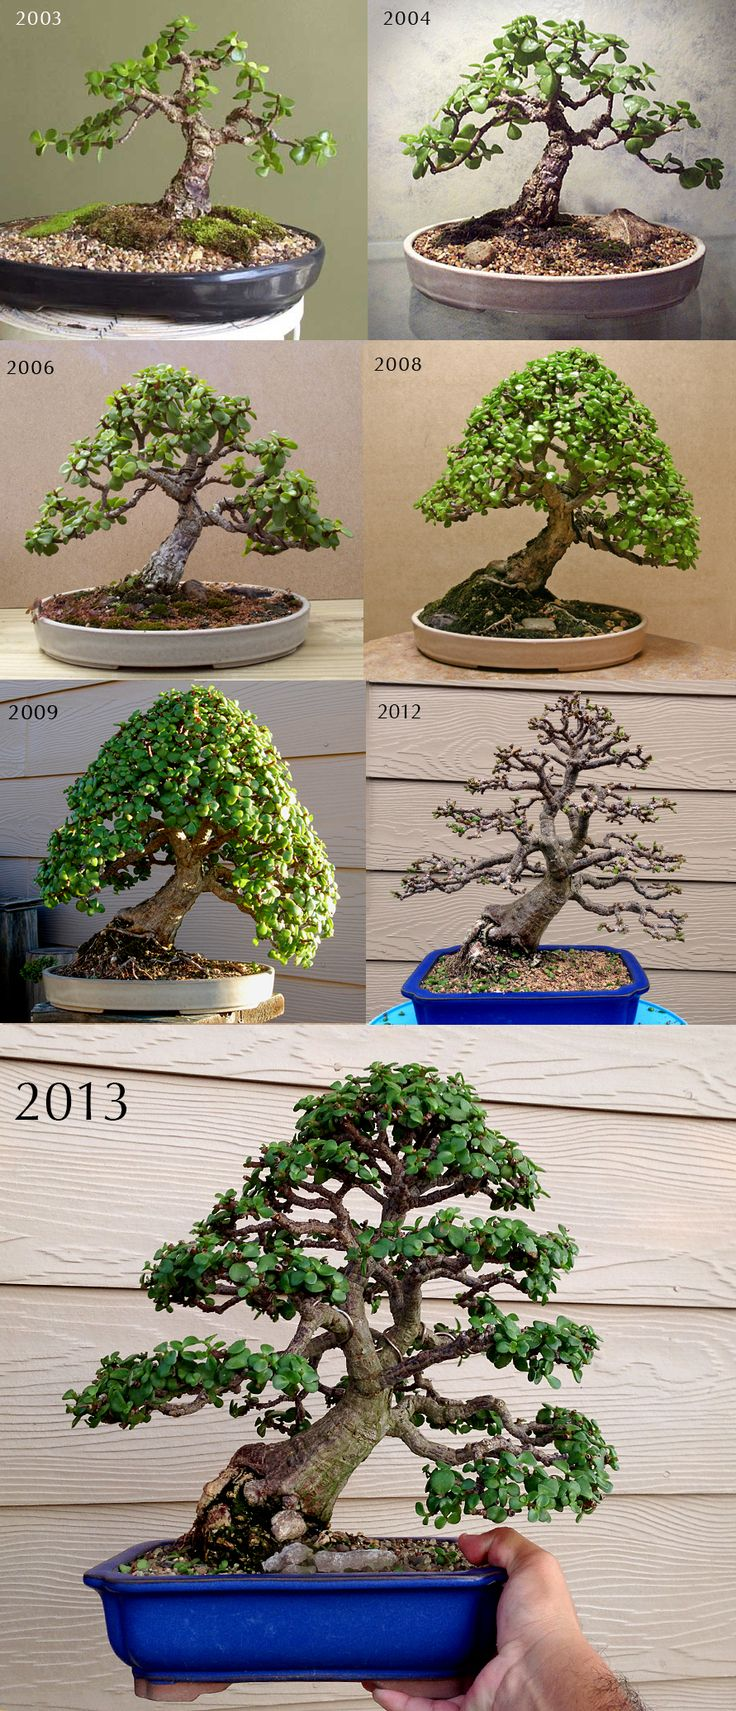 Buy Bonsai Trees Buy Unique Old Bonsai Trees - Miami Bonsai Trees -  Portulacaria Afra aka Jade Bonsai, 10 years training progression. #RealPalmTrees #BuyRealBonsaiTrees #RealBonsaiTrees RealBonsaiTrees.com